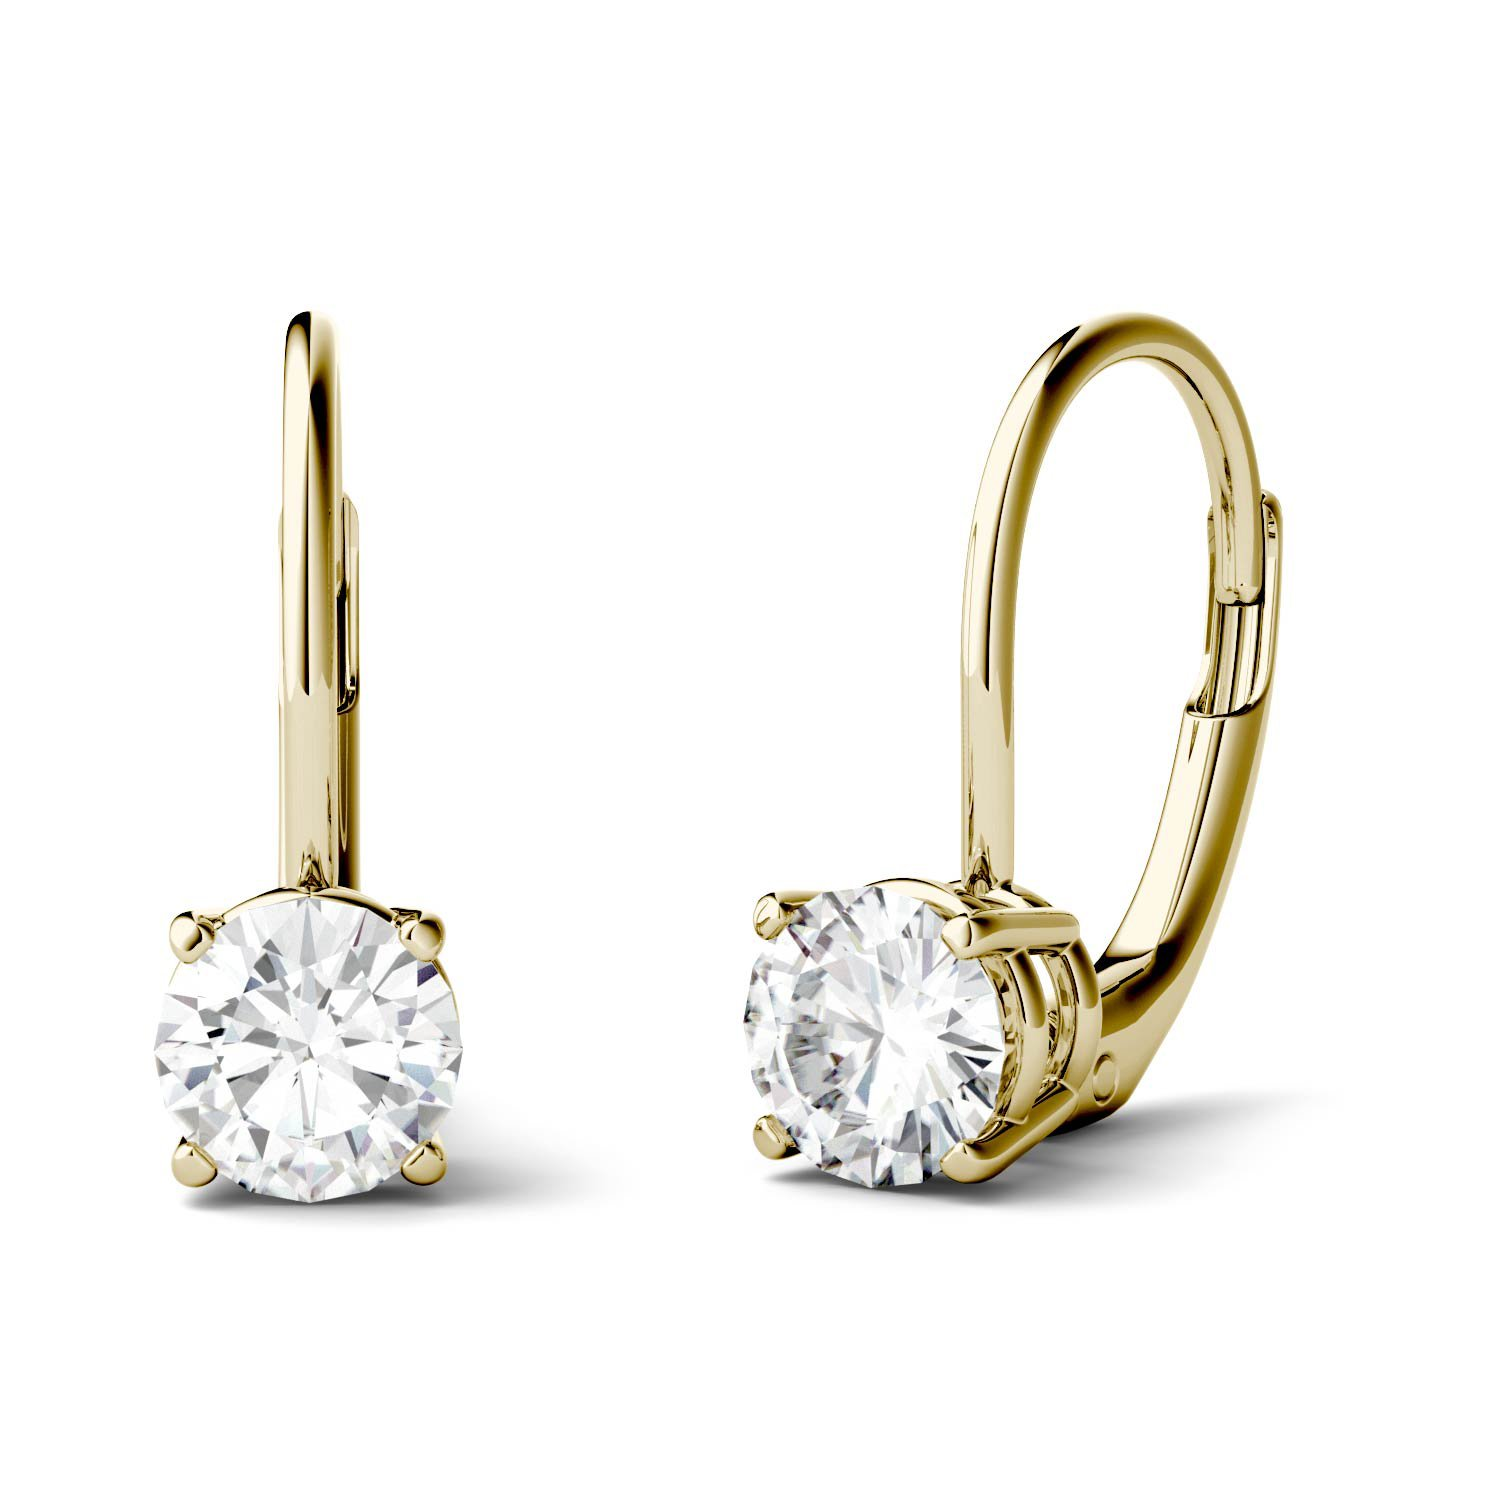 Forever One 5.0mm Round Moissanite Drop Earrings, 1.00cttw DEW (G-H-I) By Charles & Colvard